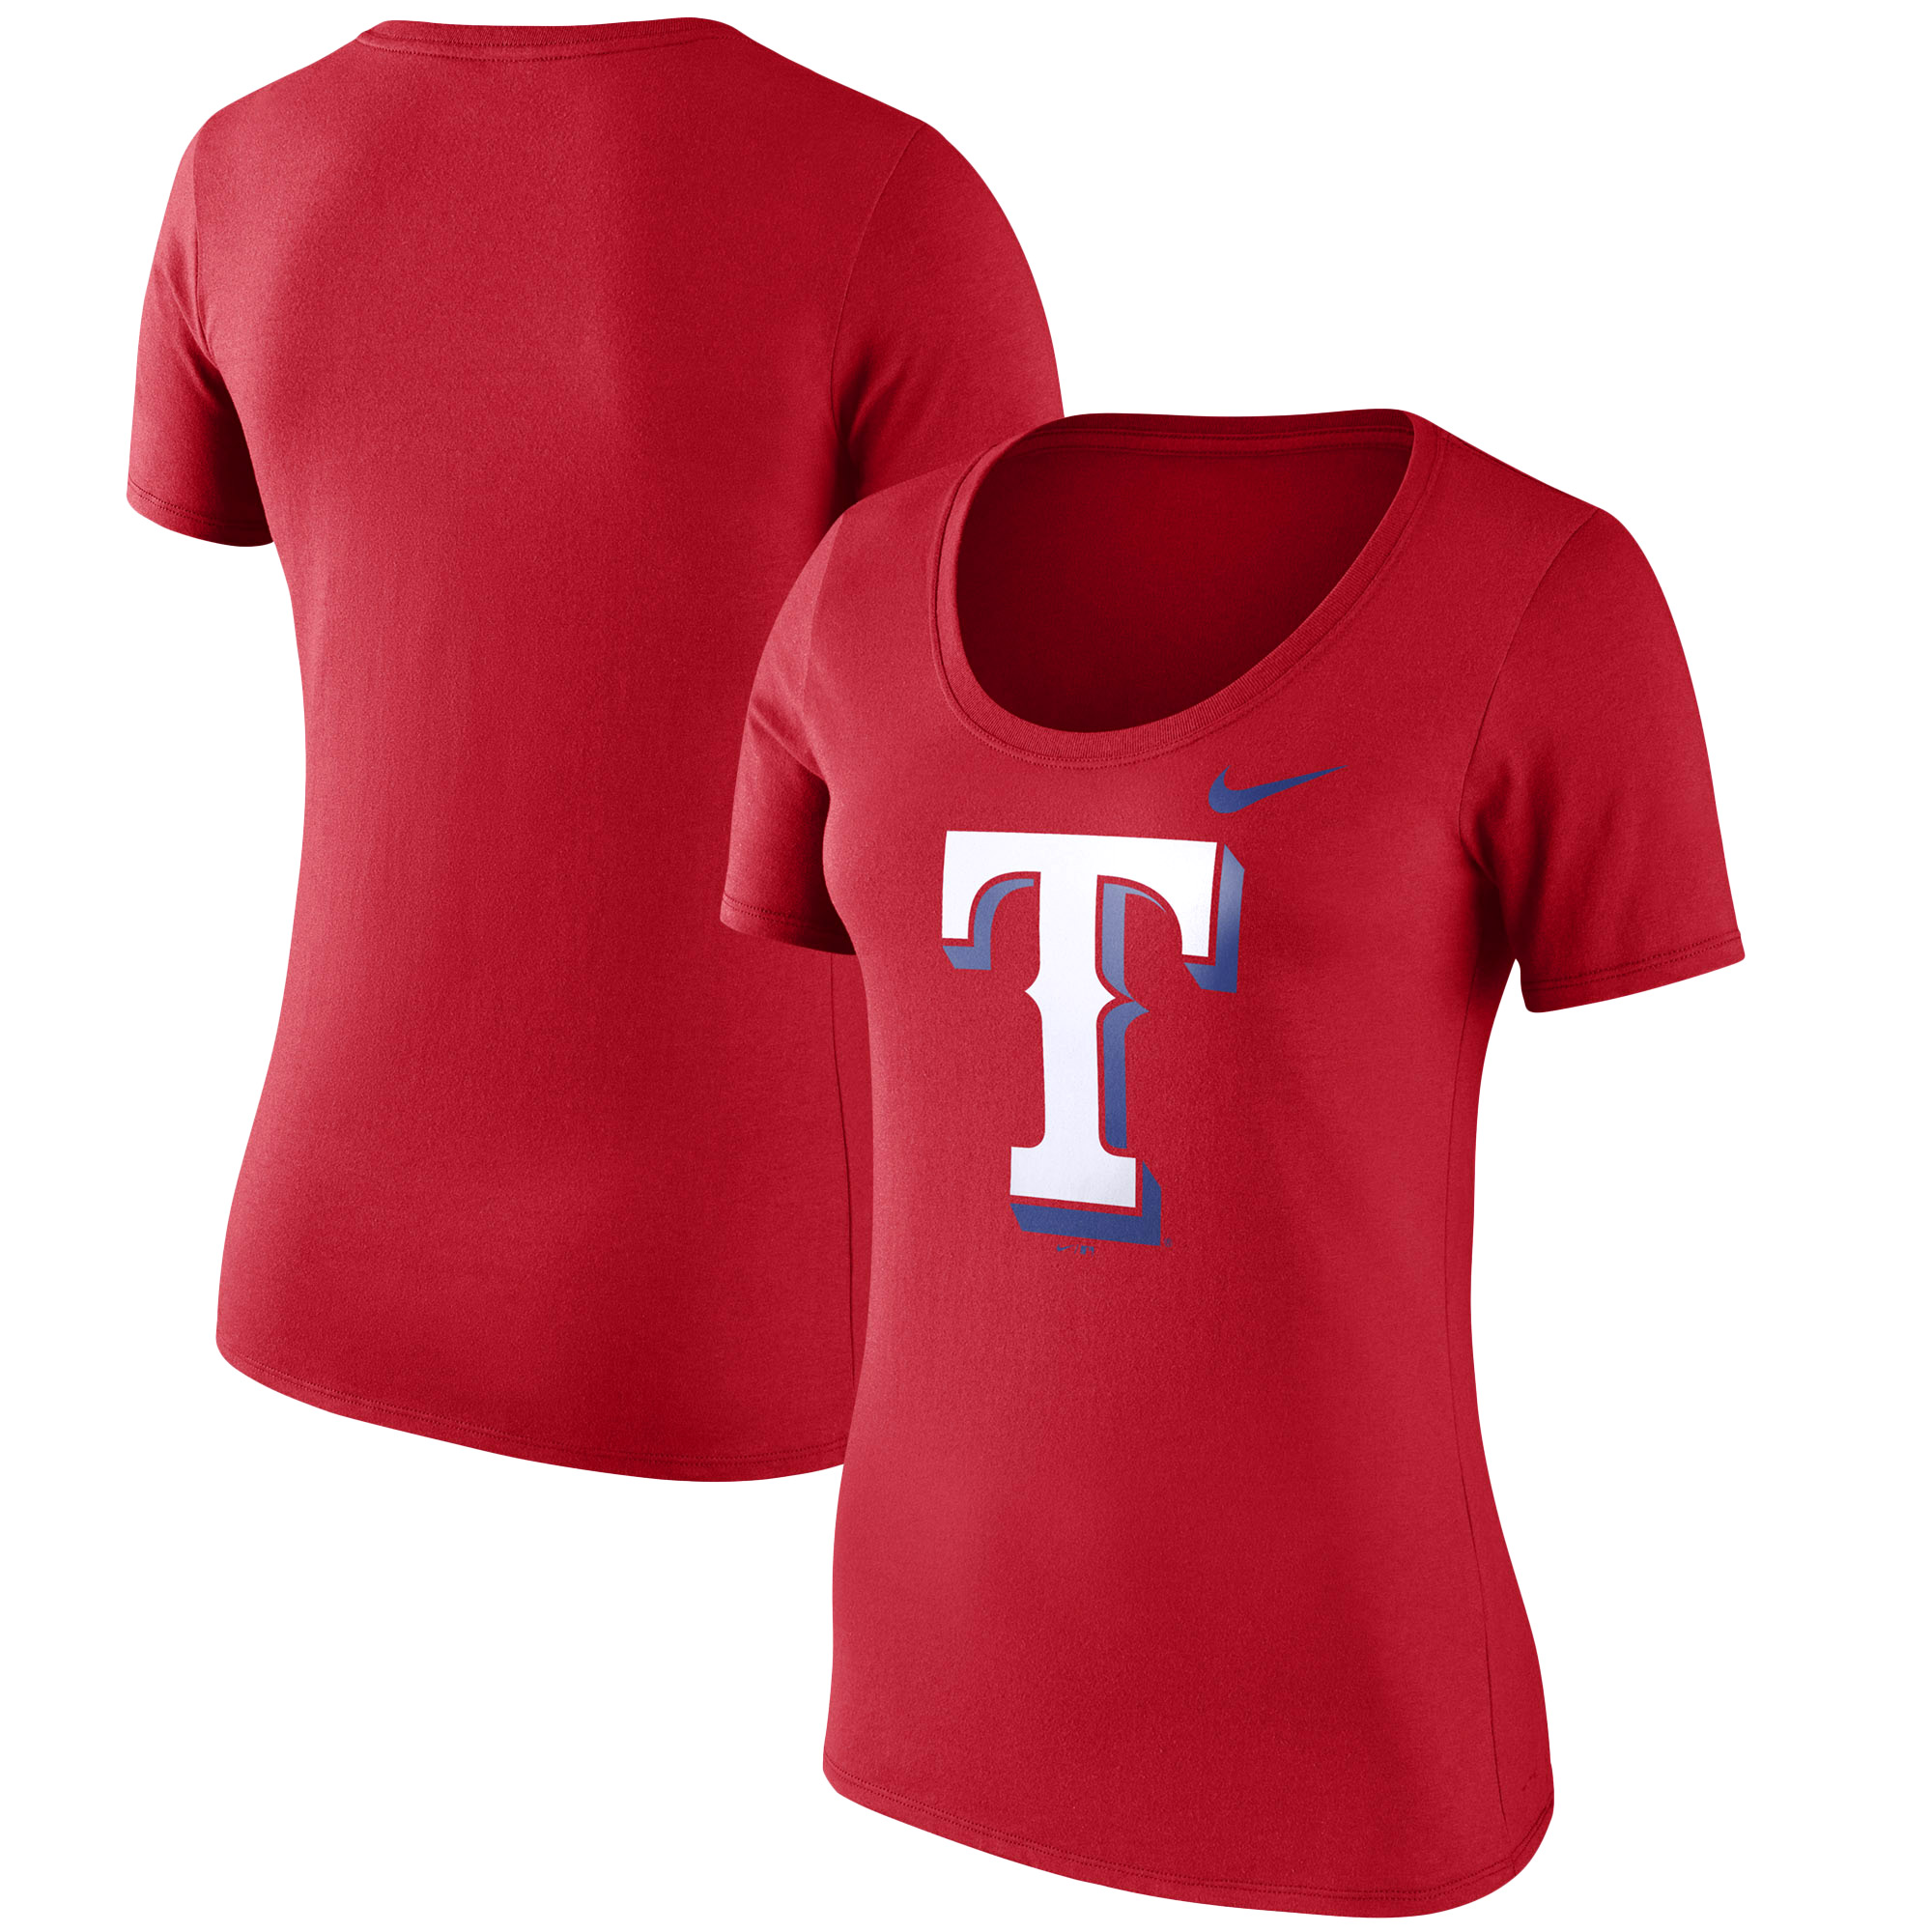 Texas Rangers Nike Women's Logo Scoop Neck T-Shirt - Red